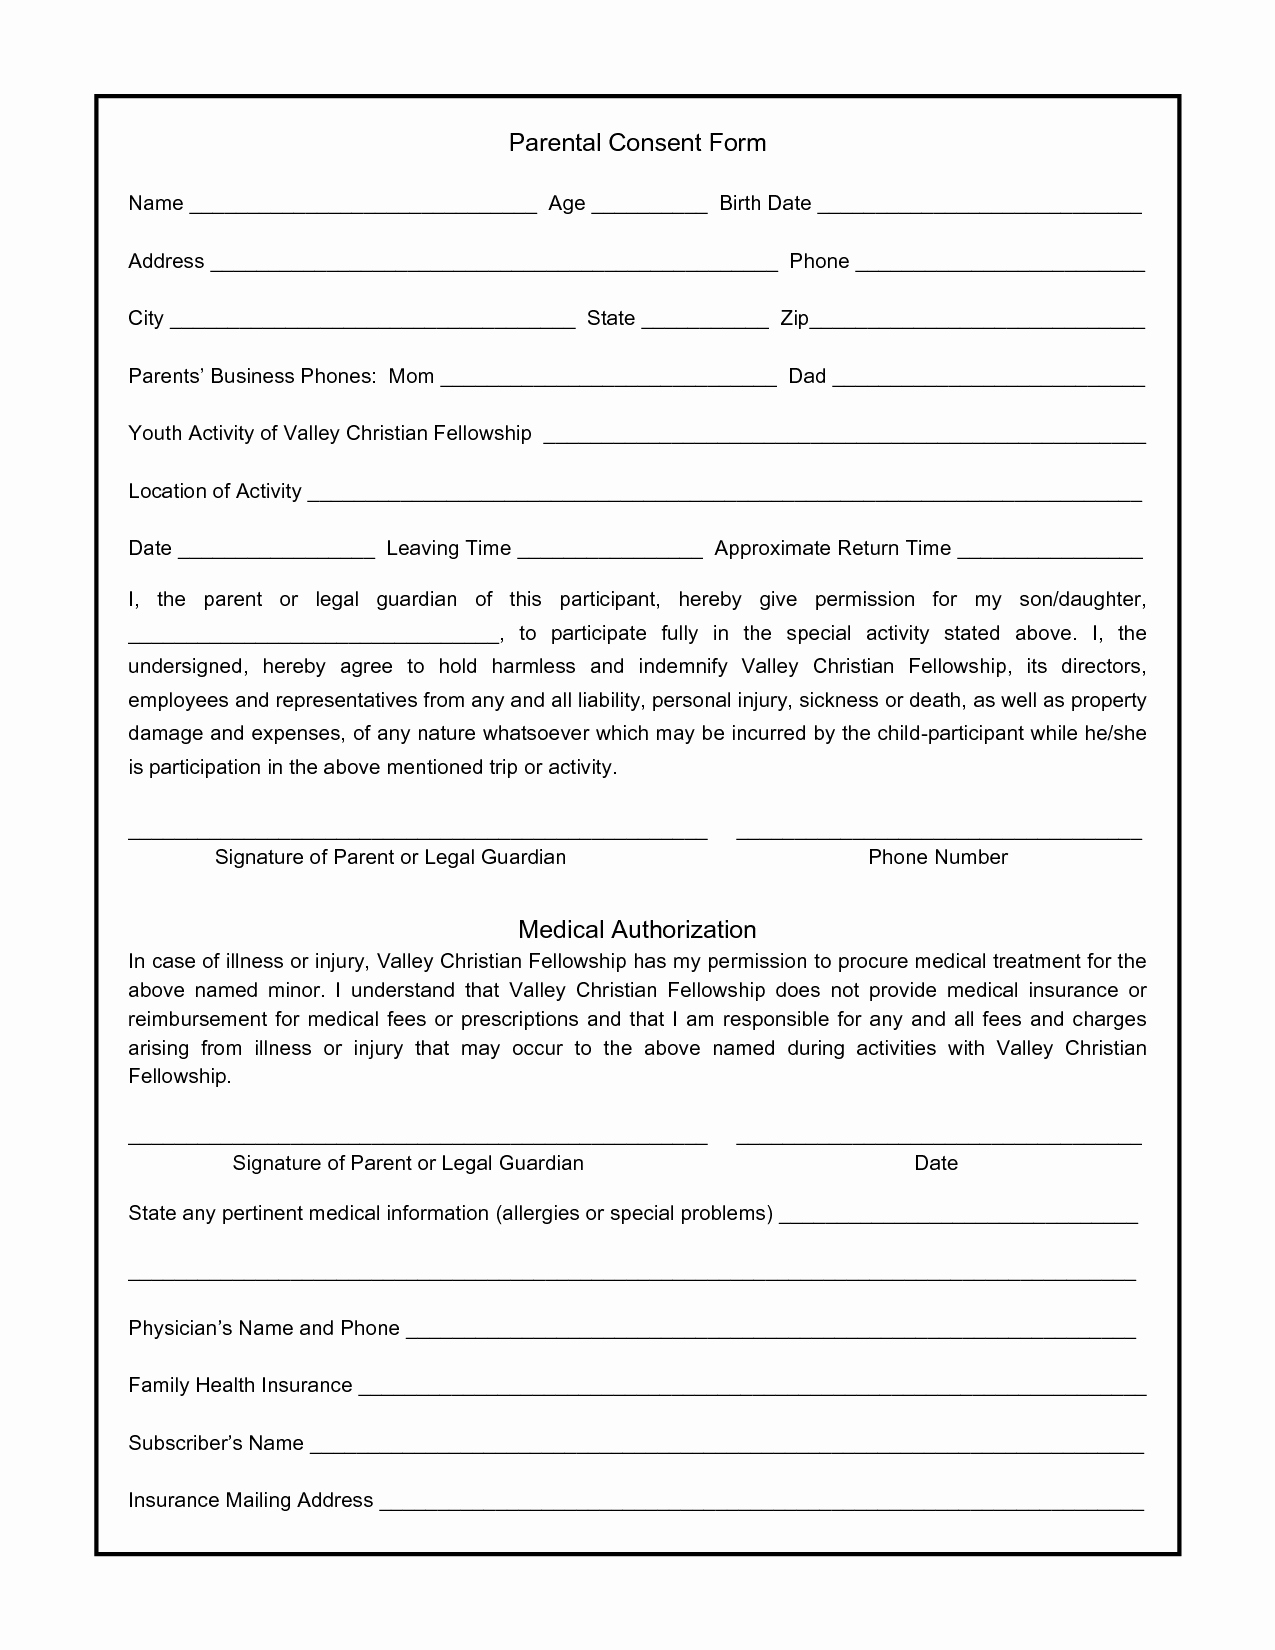 Consent to Treat form Template Unique Parental Consent form for S Swifter Parental